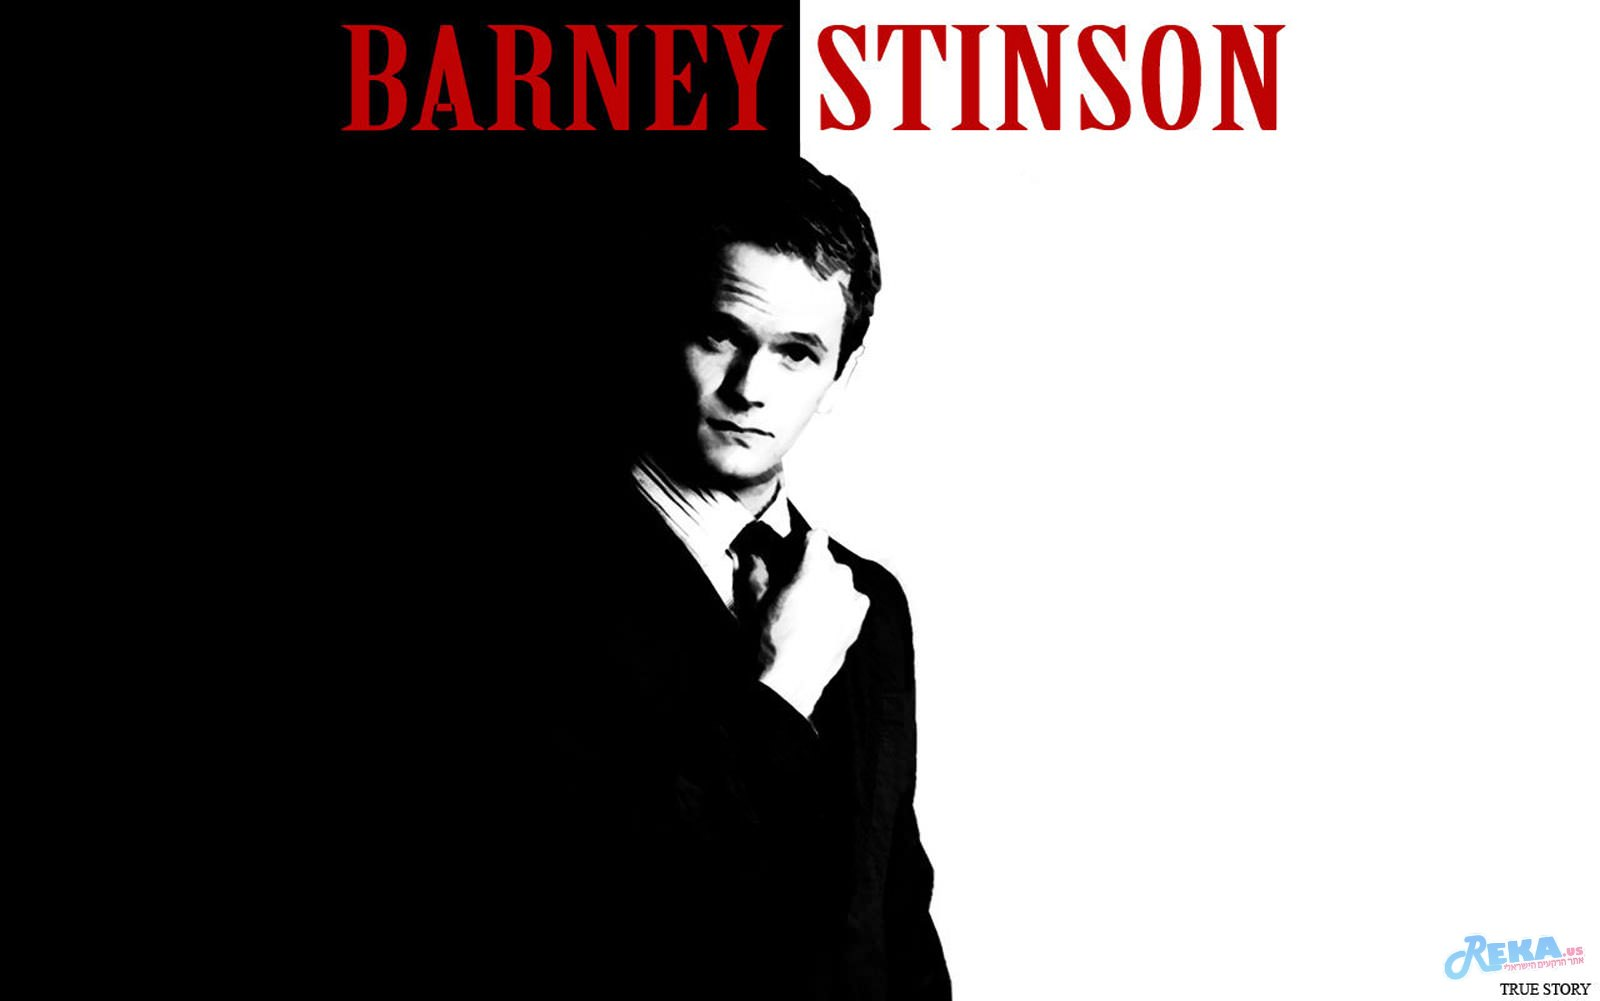 Barney-Stinson-as-Scarface-how-i-met-your-mother-8934947-1280-800